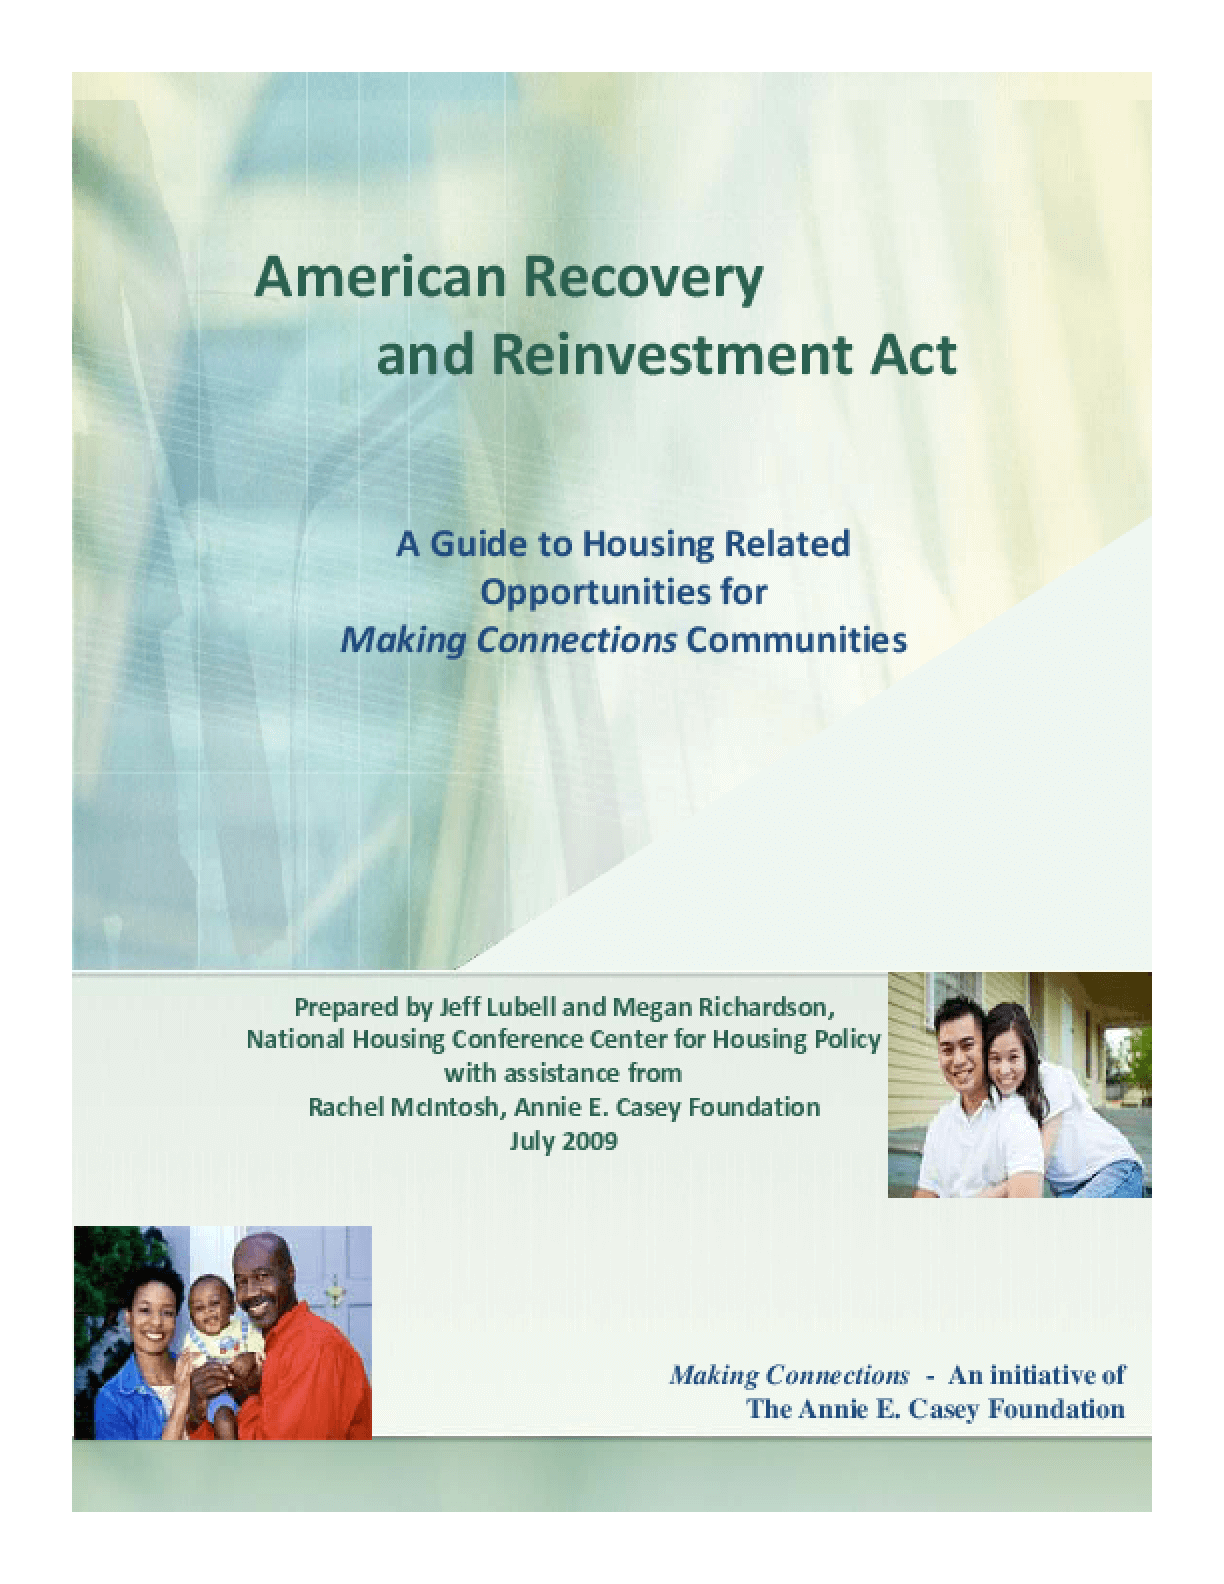 American Recovery and Reinvestment Act: A Guide to Housing Related Opportunities for Making Connections Communities